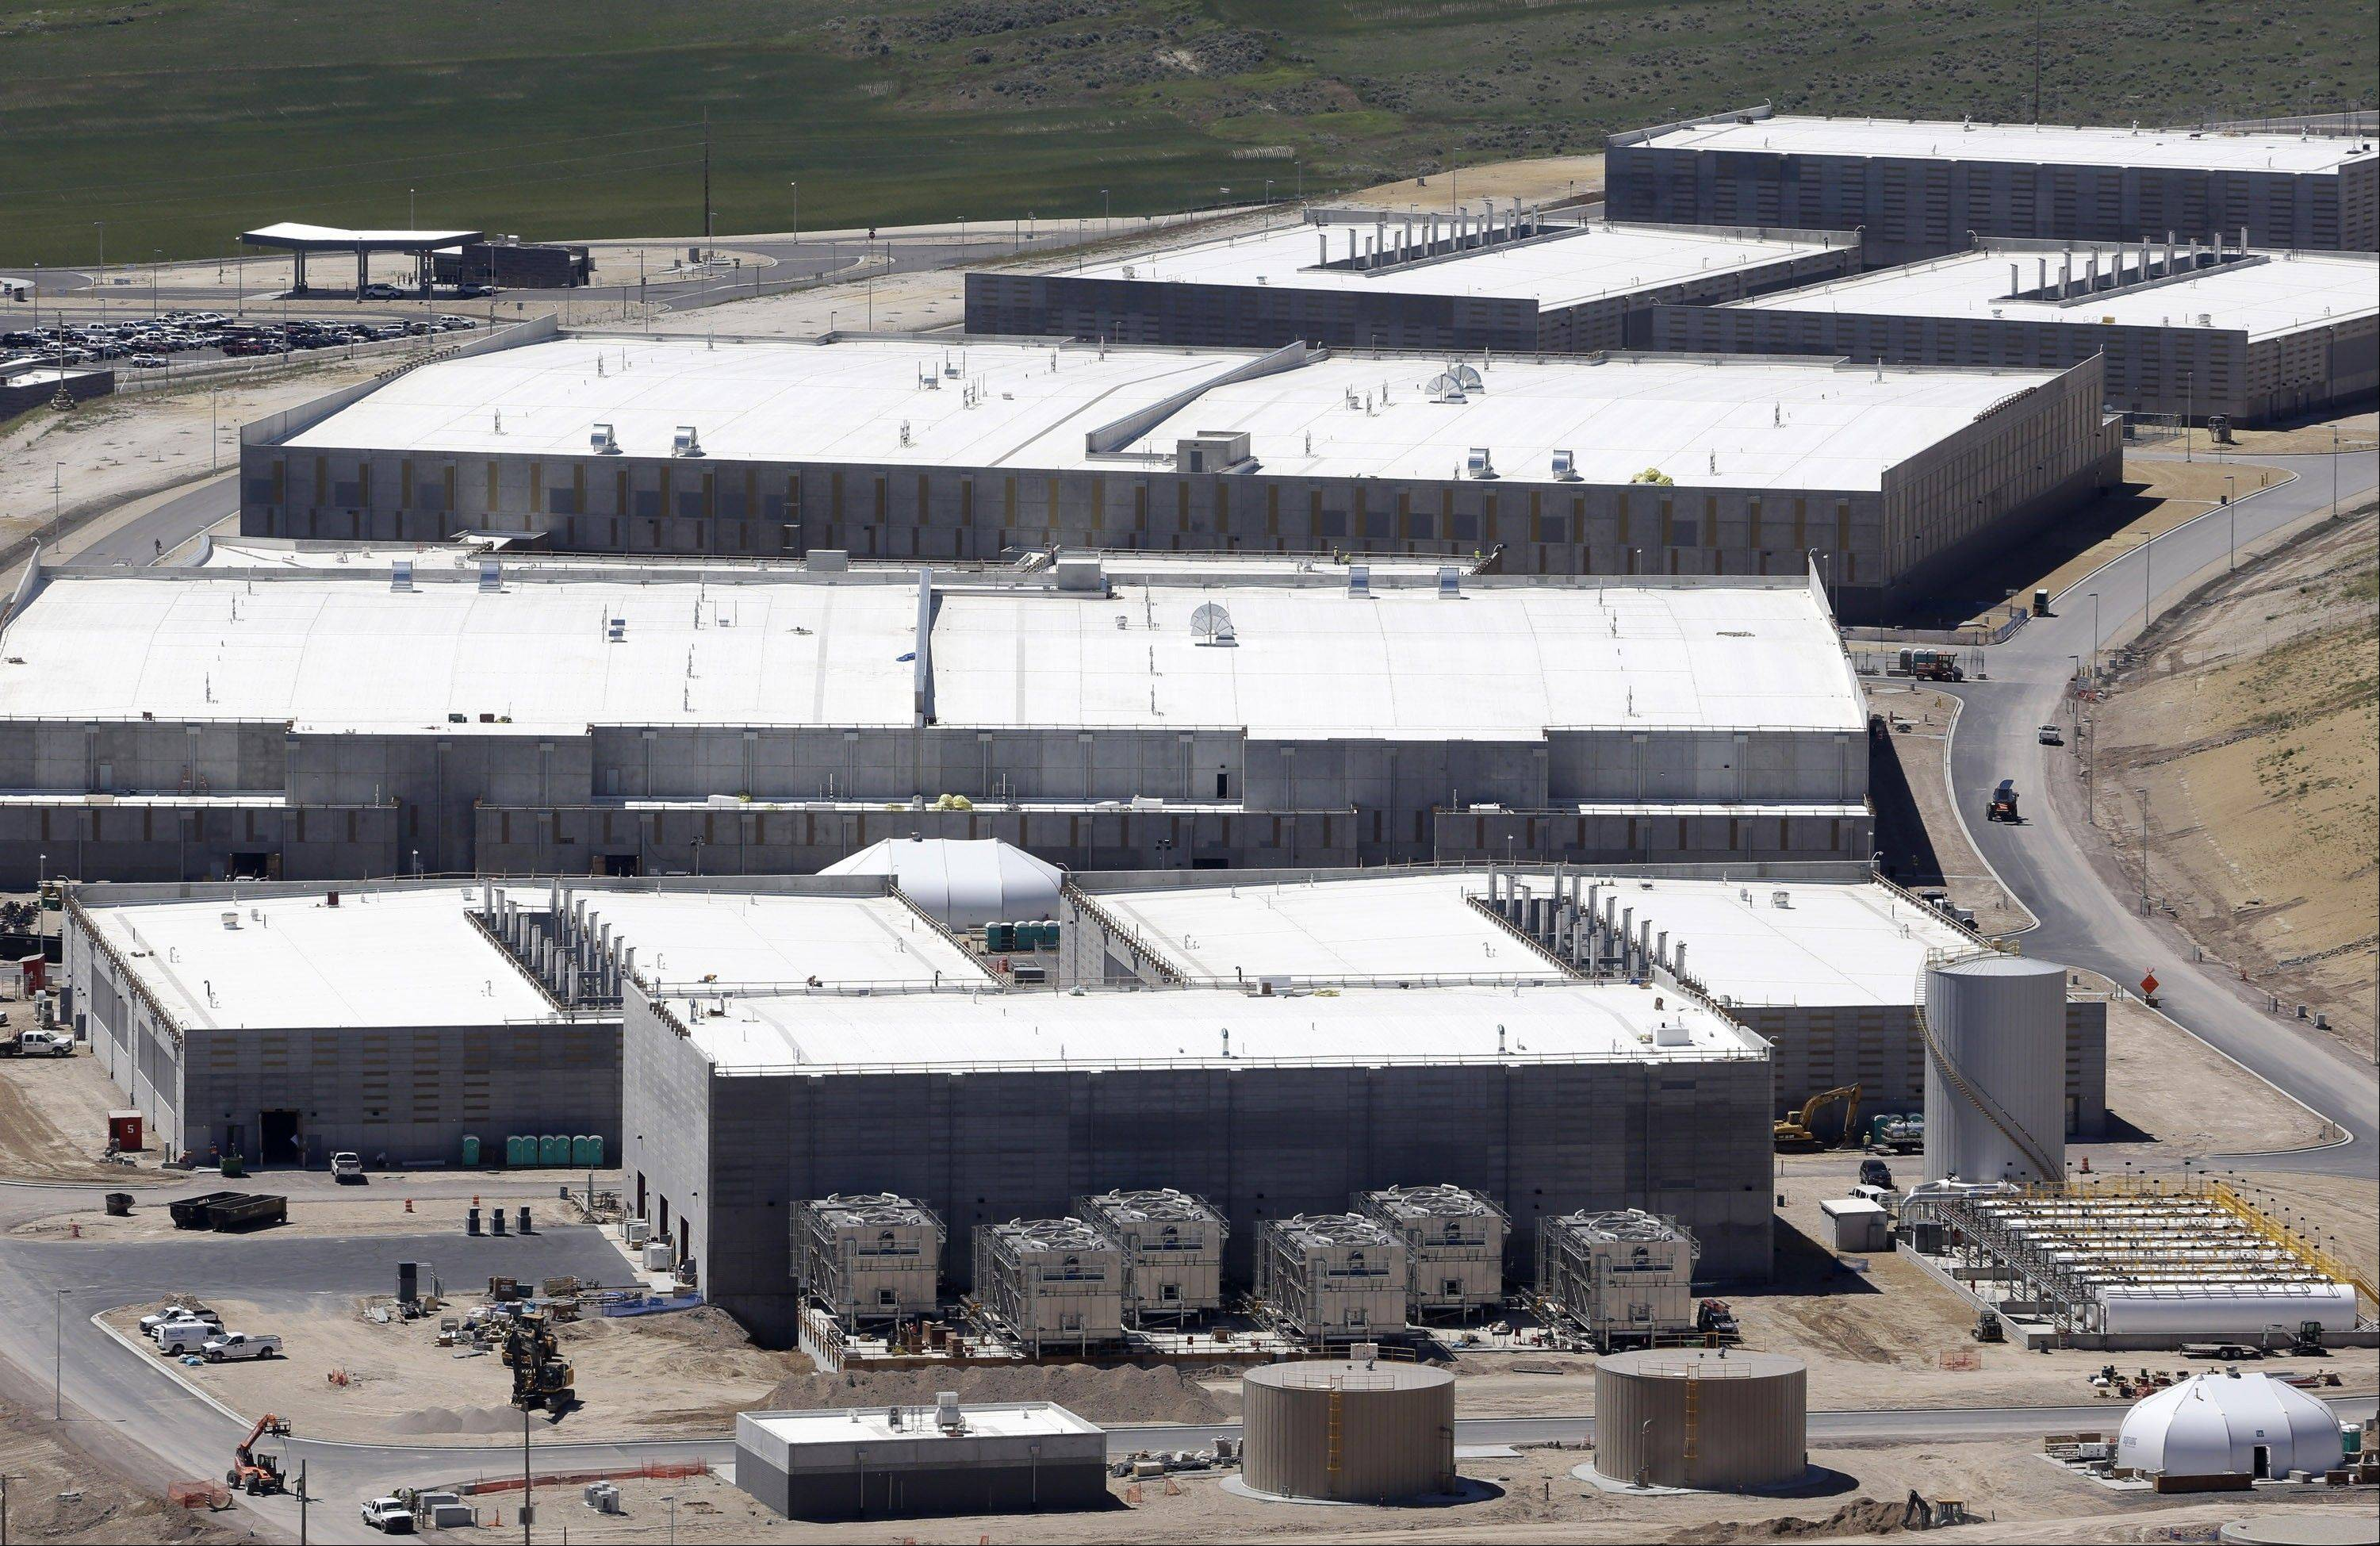 NSA's Utah Data Center. Newly declassified documents released Tuesday Sept. 10, 2013 tell a story of a surveillance apparatus so unwieldy and complex that nobody fully comprehended it, even as the government pointed it at the American people in the name of protecting them.